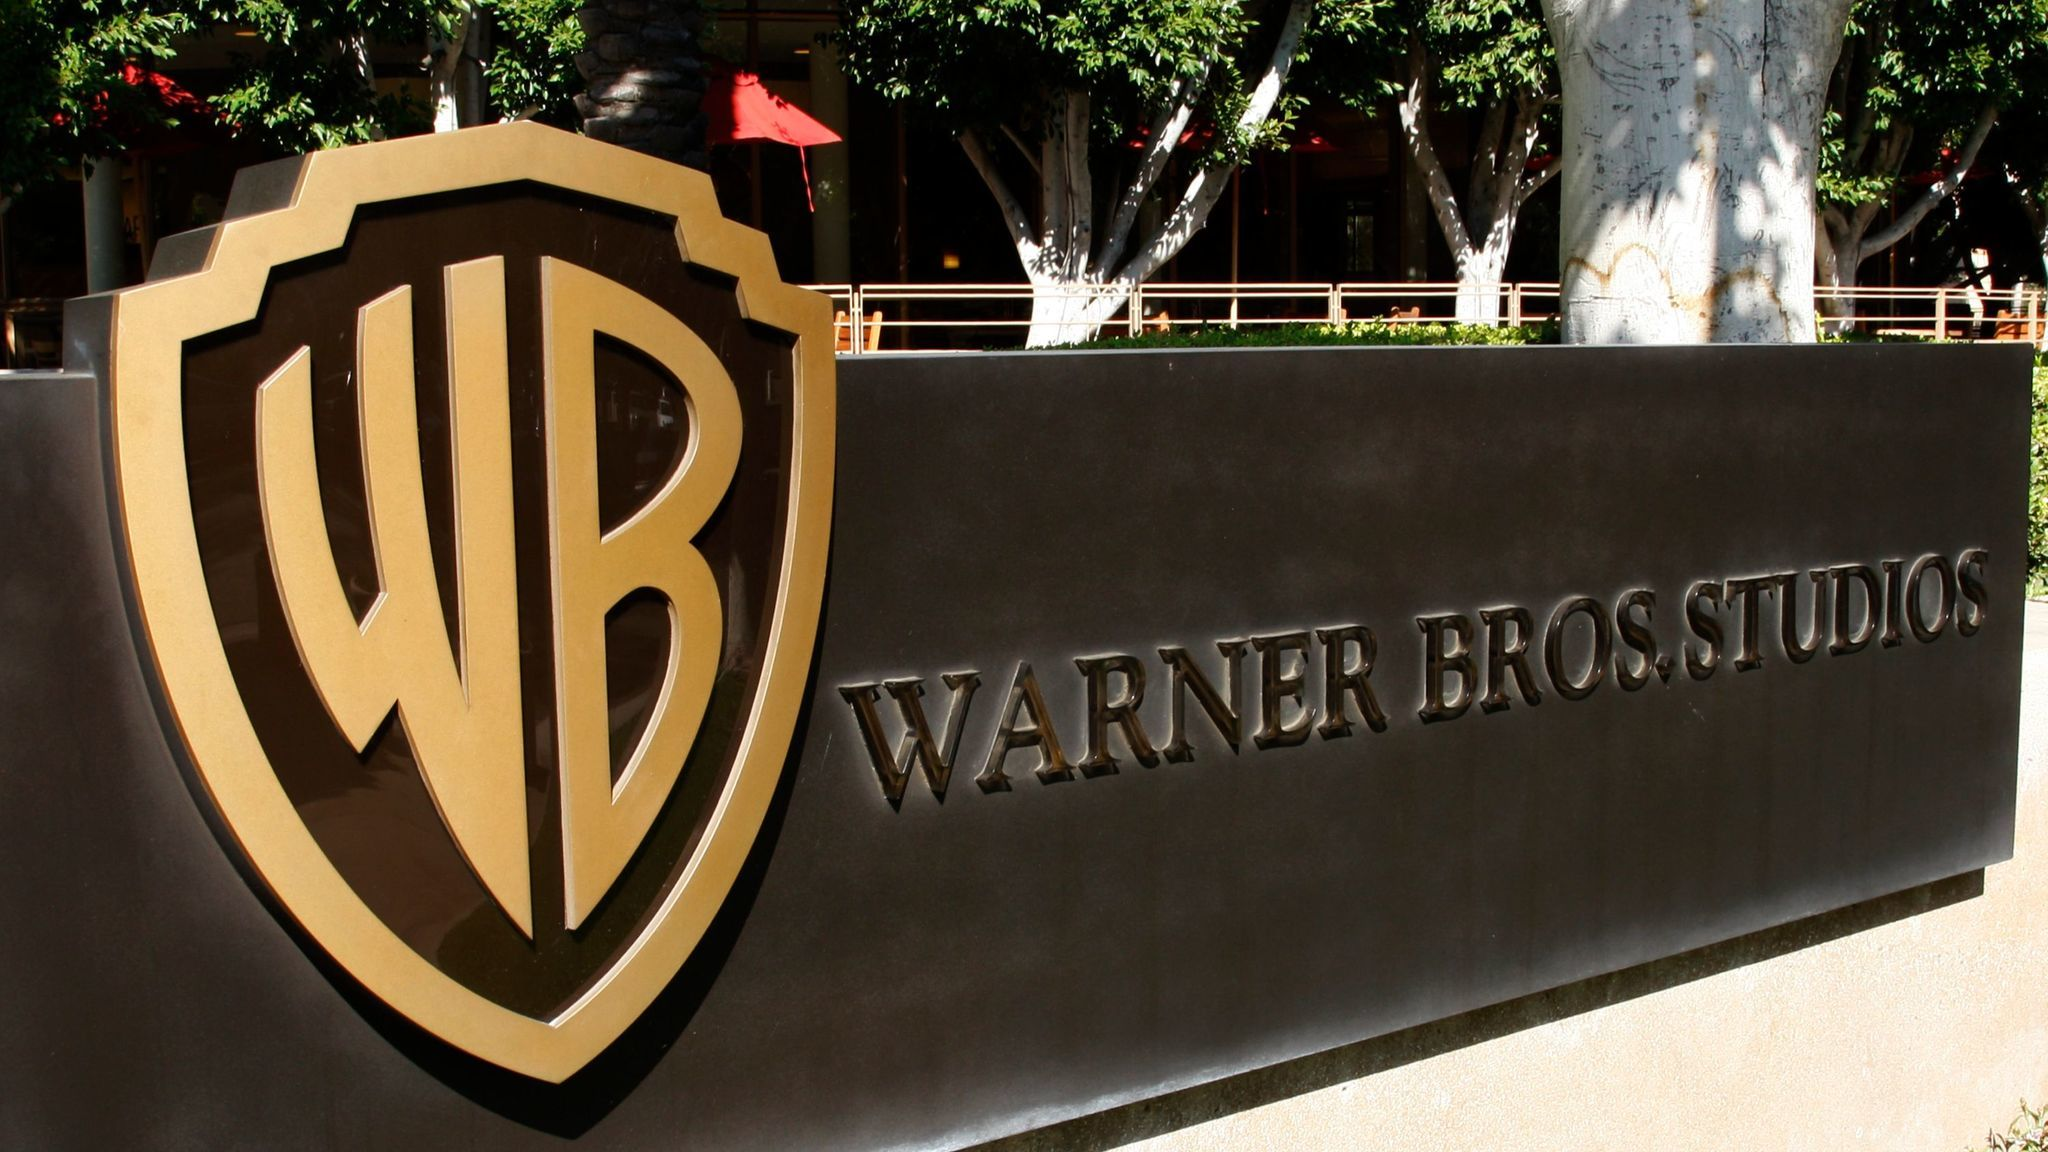 The Warner Bros. logo is prominent outside the studio lot in Burbank.